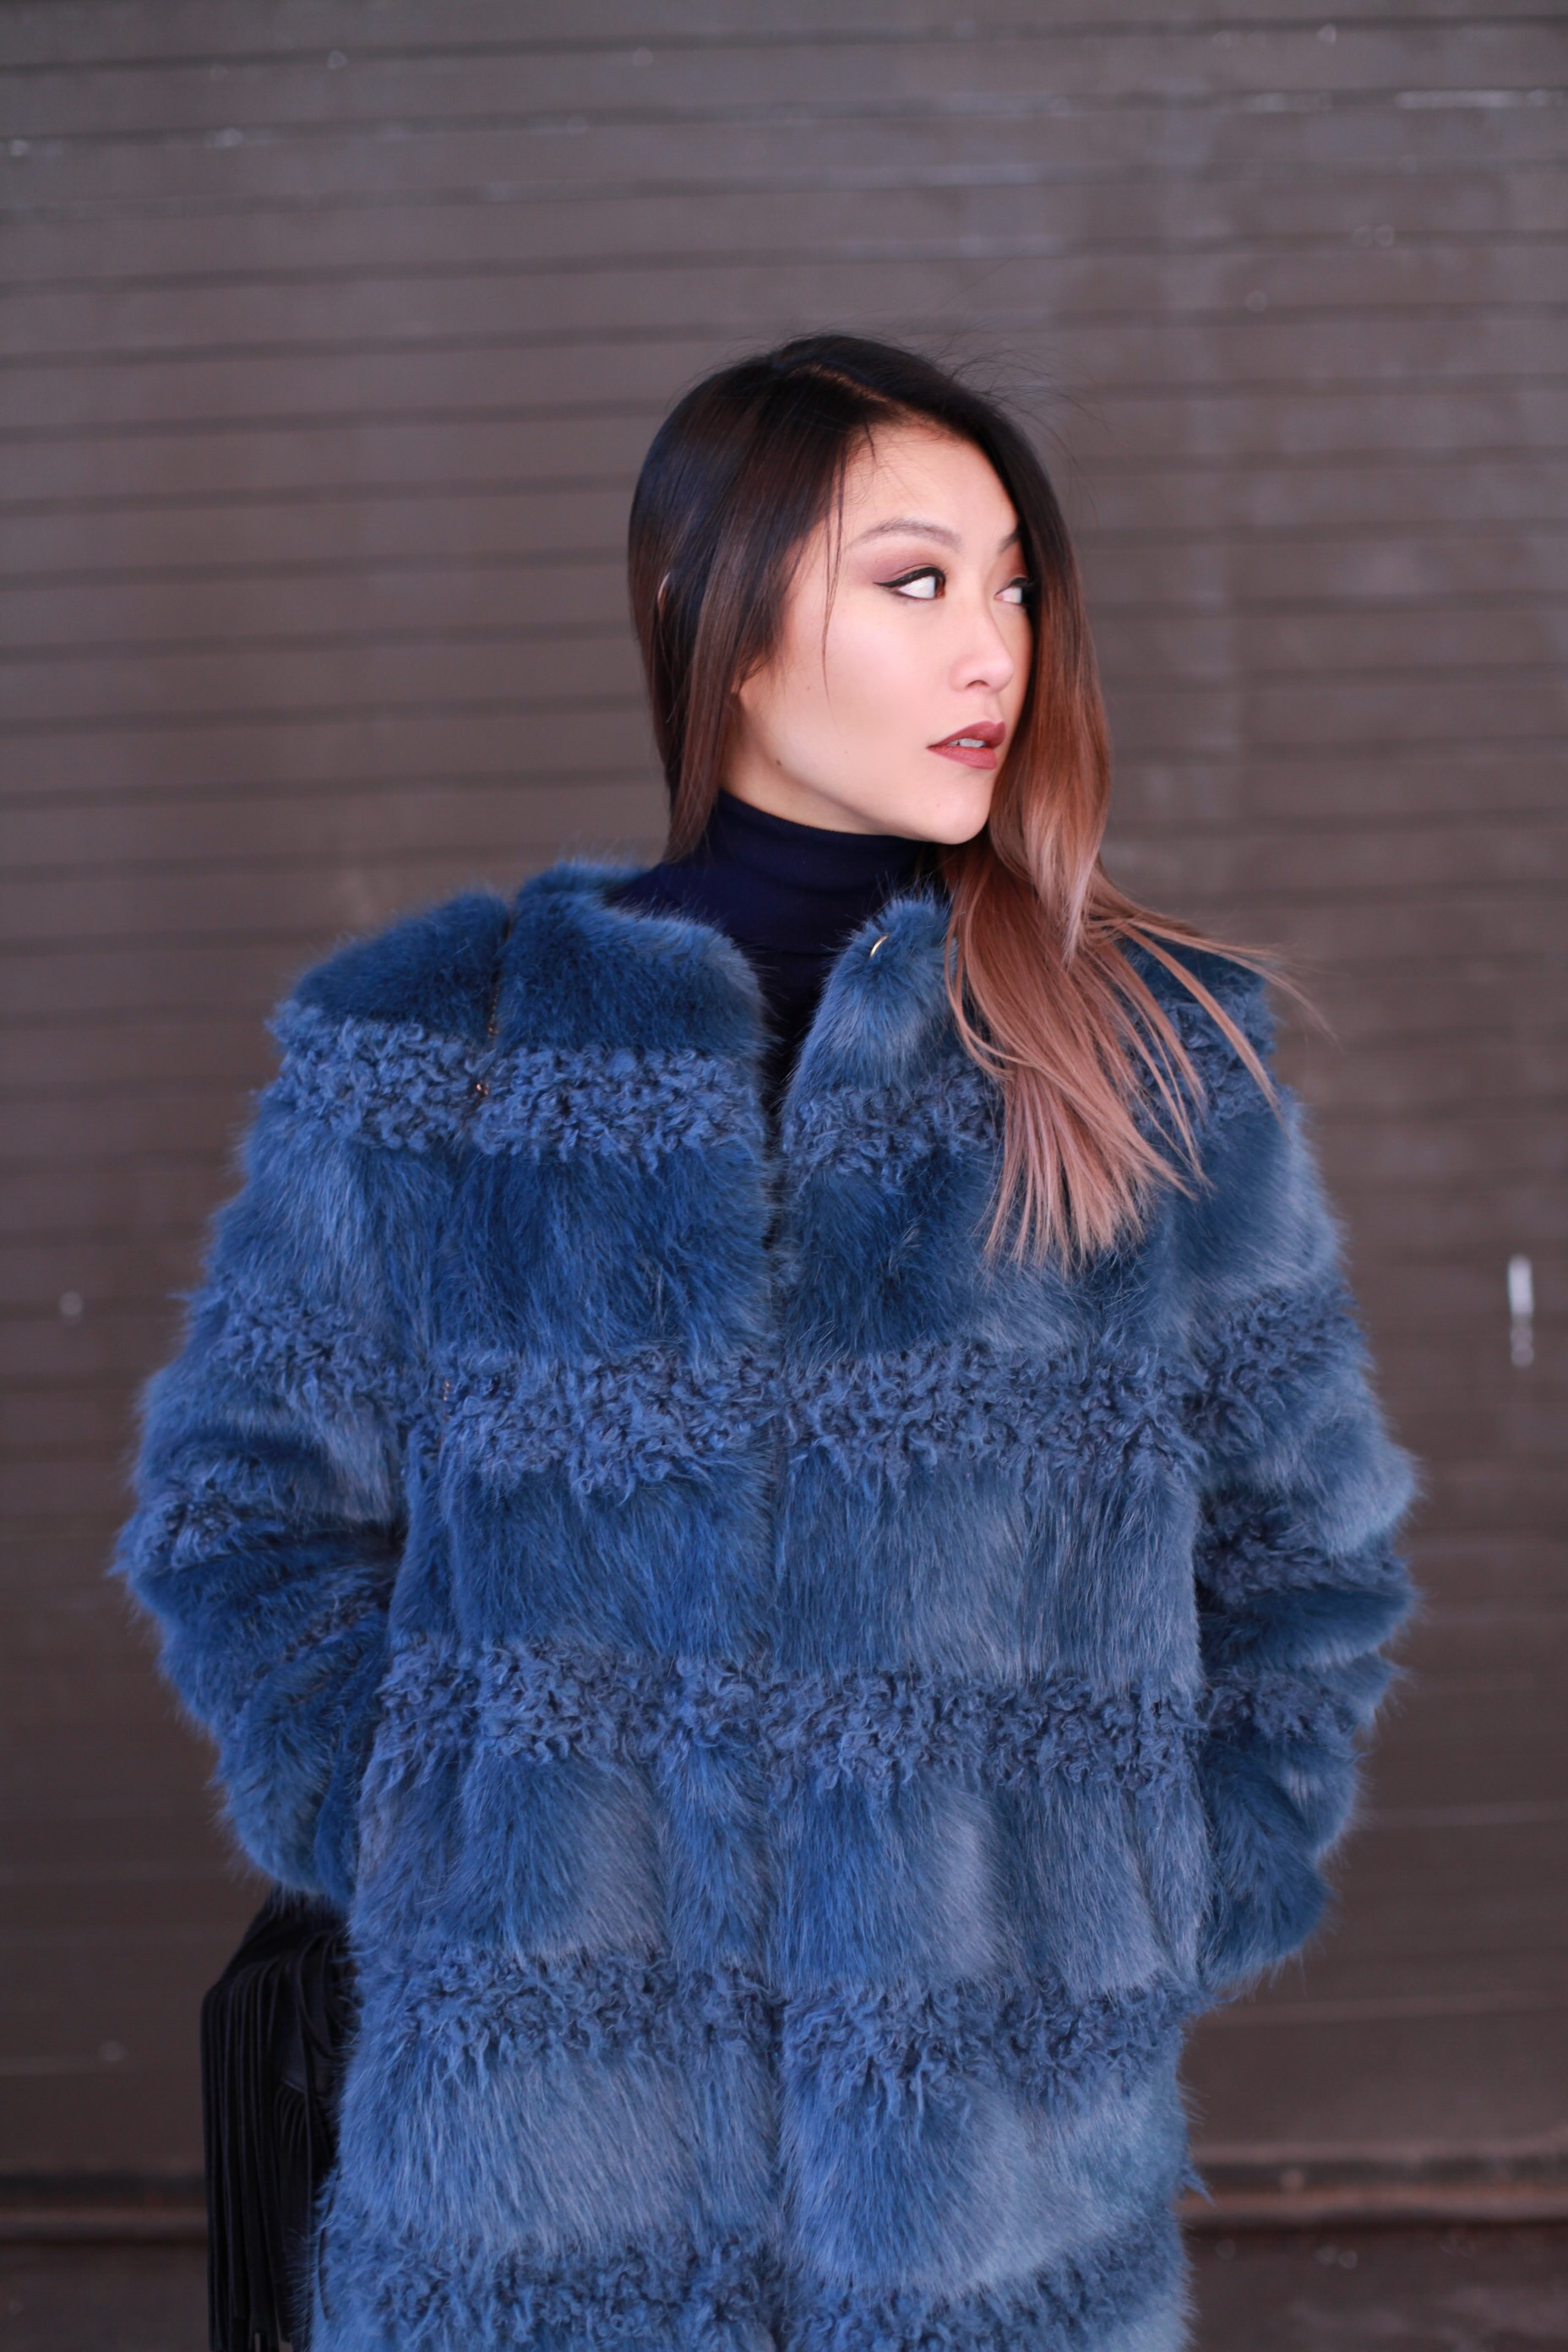 blue_faux_fur_coat.jpg2.jpg